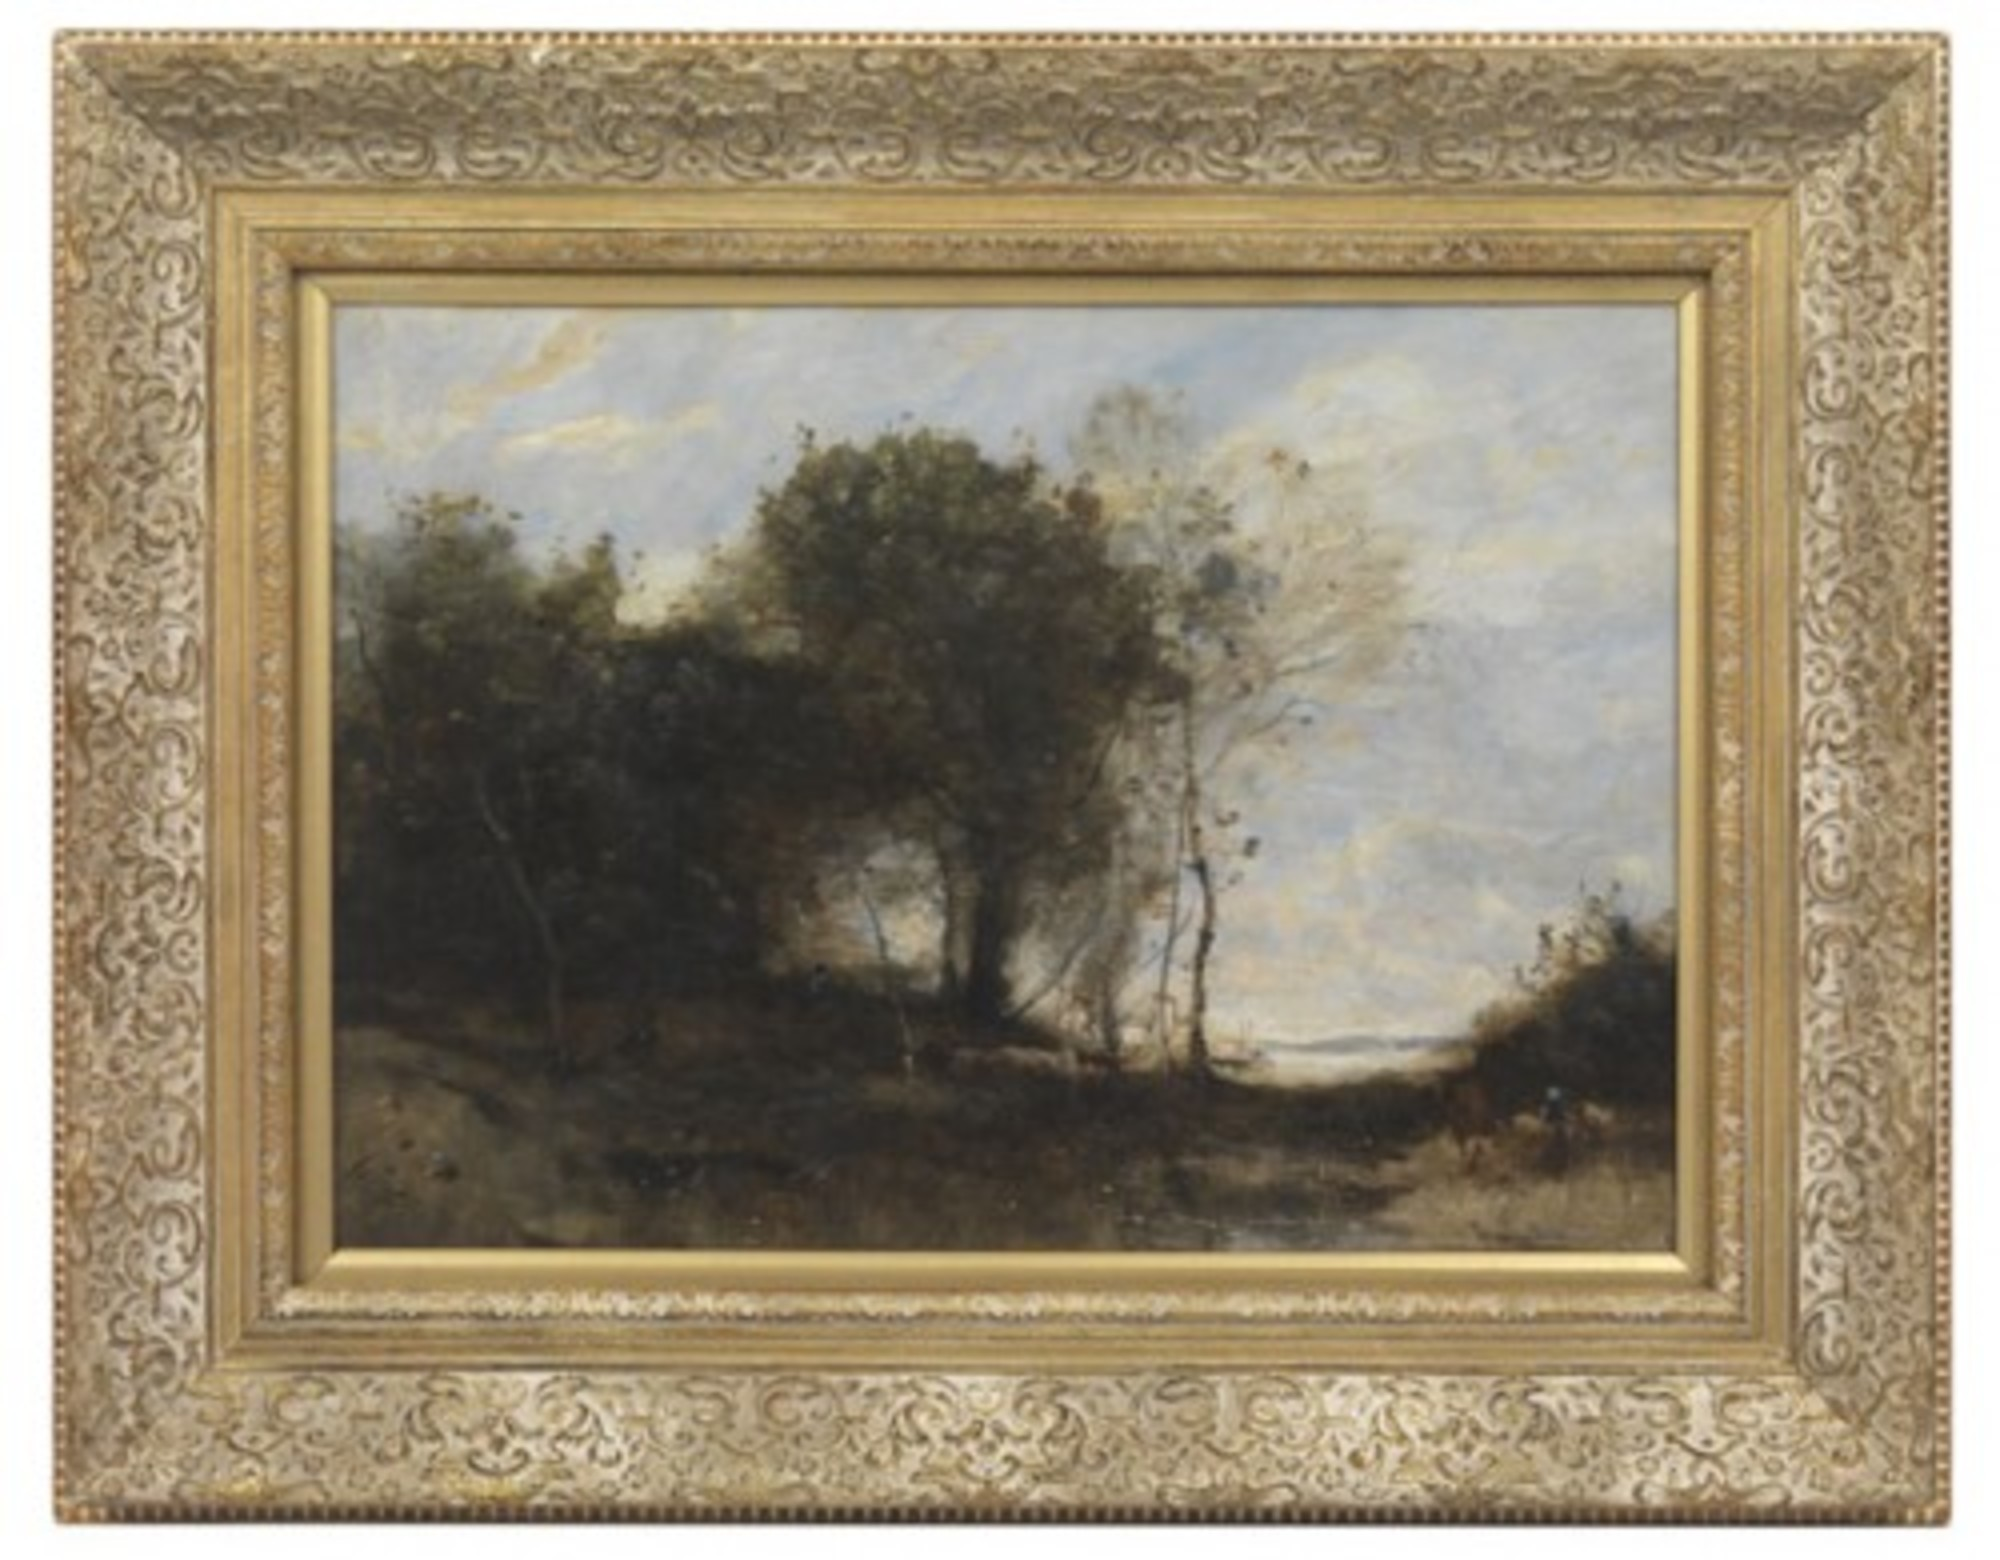 Corot---Wooded-Landscape-with-Figures-circa-1865-1874-possibly.jpg